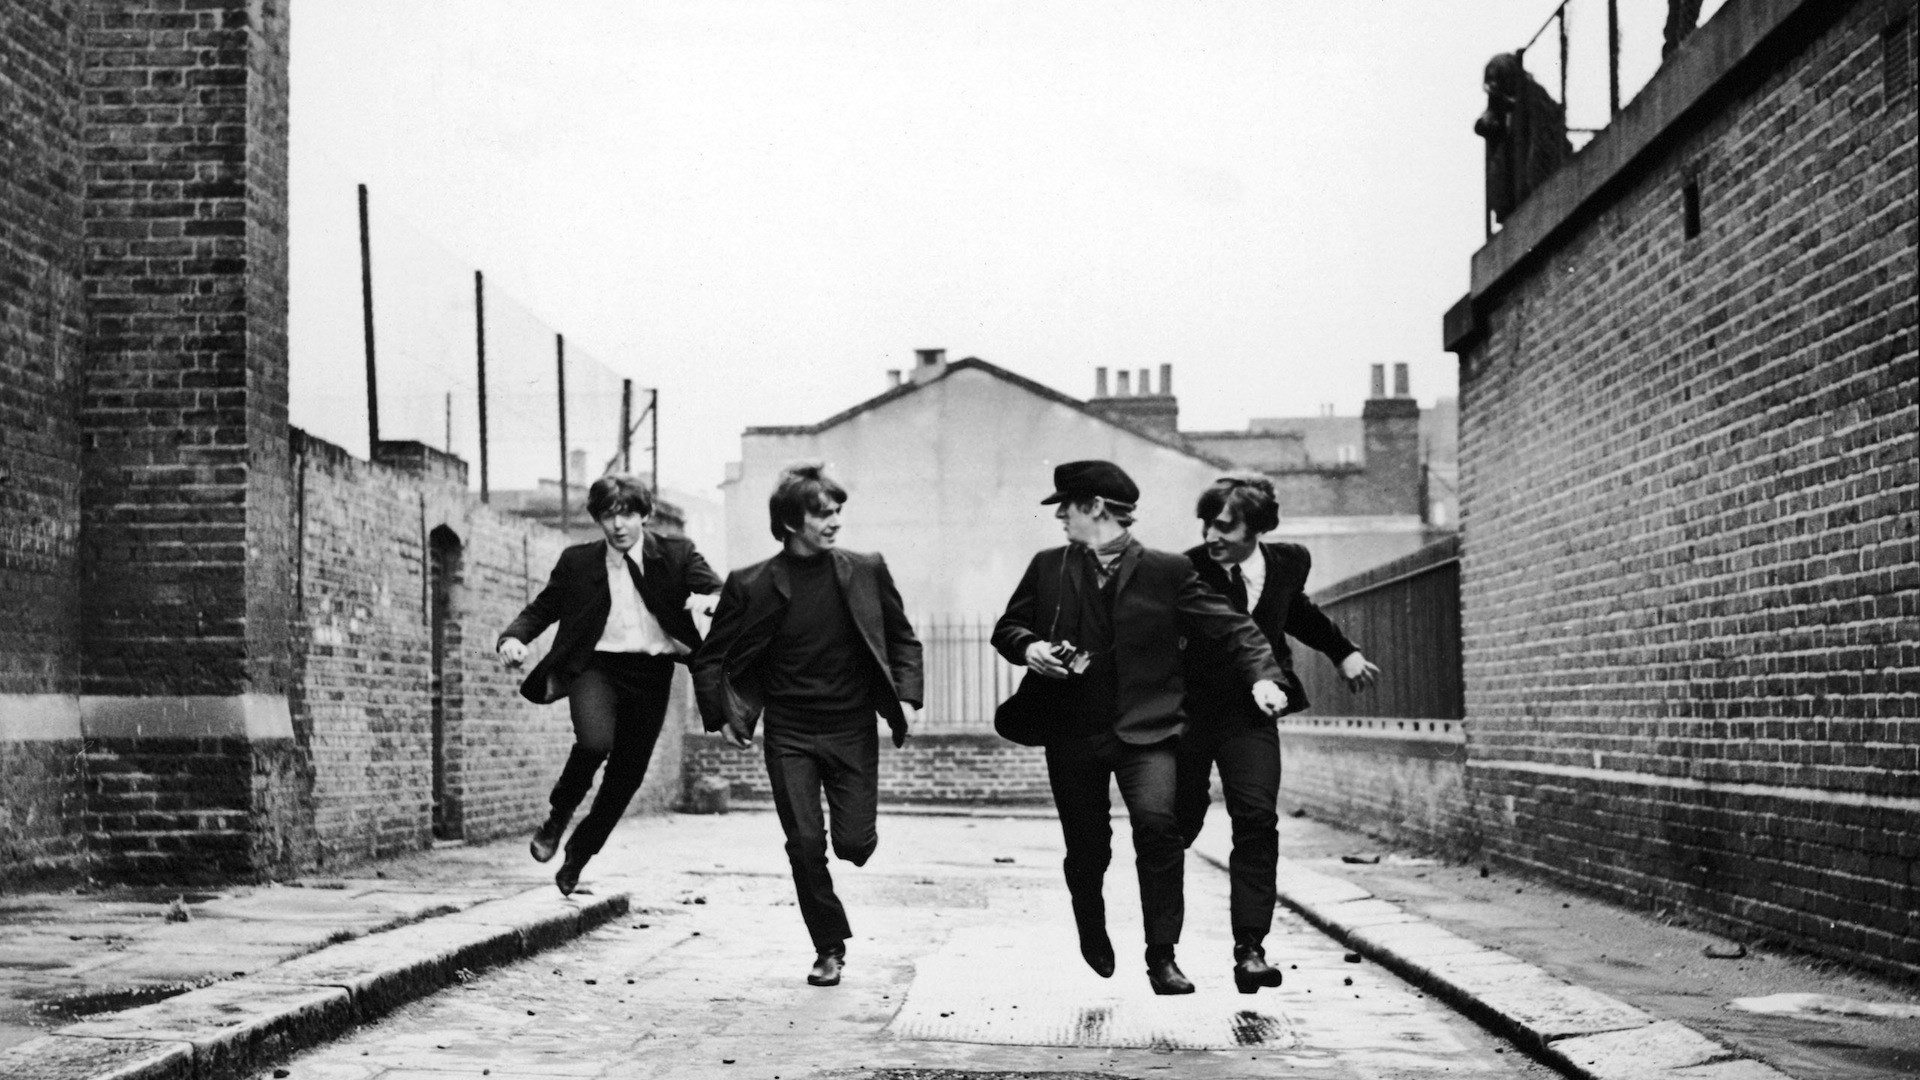 Simple Wallpaper Mac The Beatles - 939553-beatles-wallpaper-border-1920x1080-cell-phone  Perfect Image Reference_73813.jpg